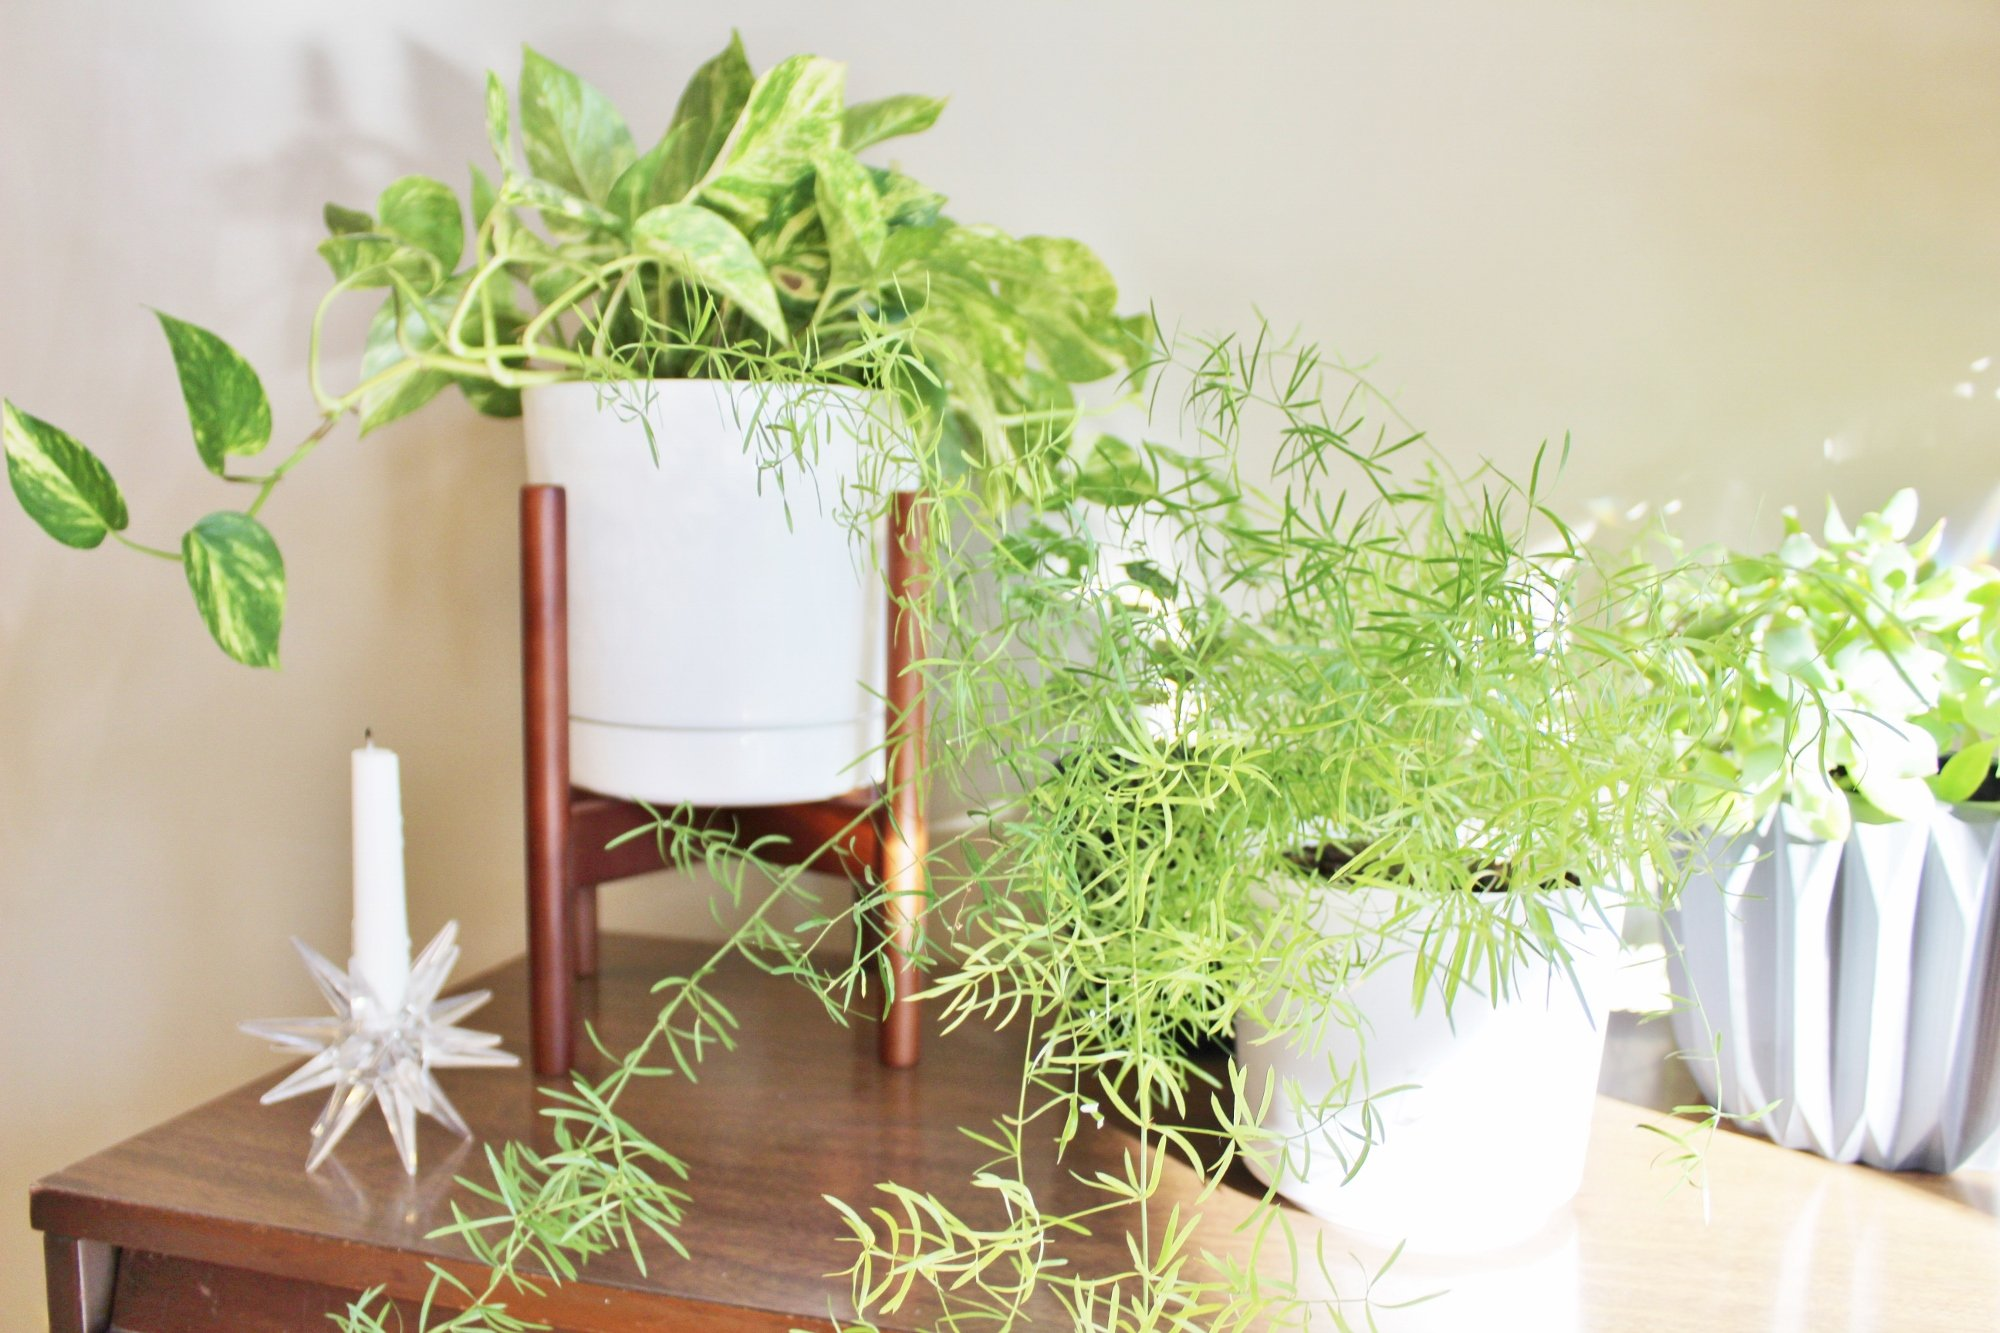 Modern white and gray planters for houseplants